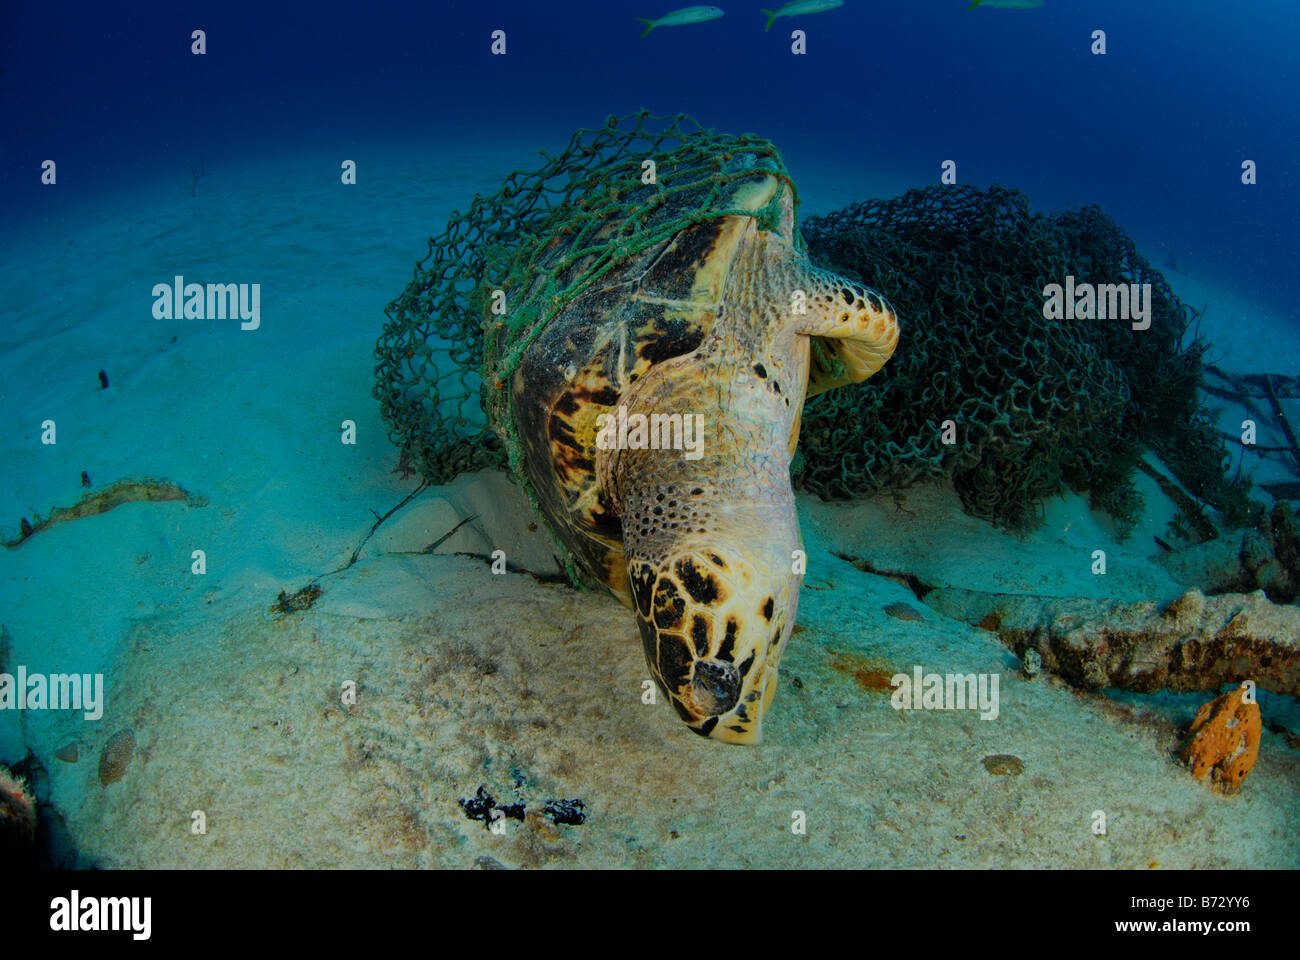 Dead sea turtle trapped in fishing net, underwater, ecological disaster - Stock Image